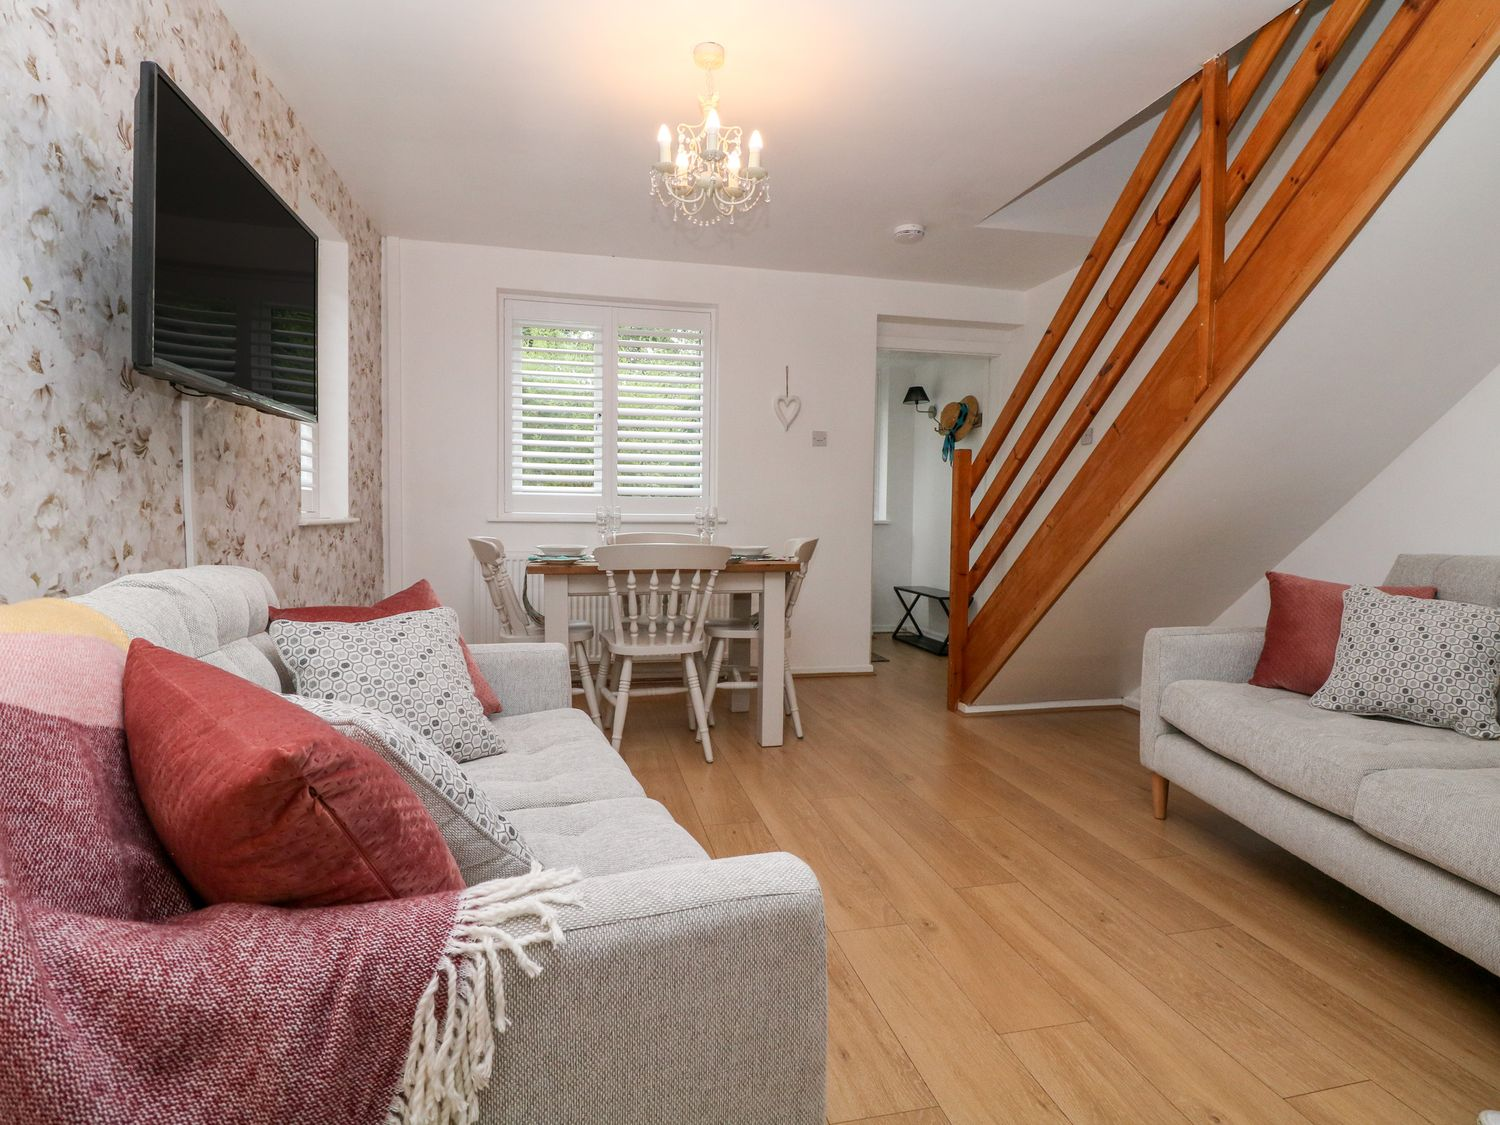 Hunters Cottage in Chinley - sleeps 4 people